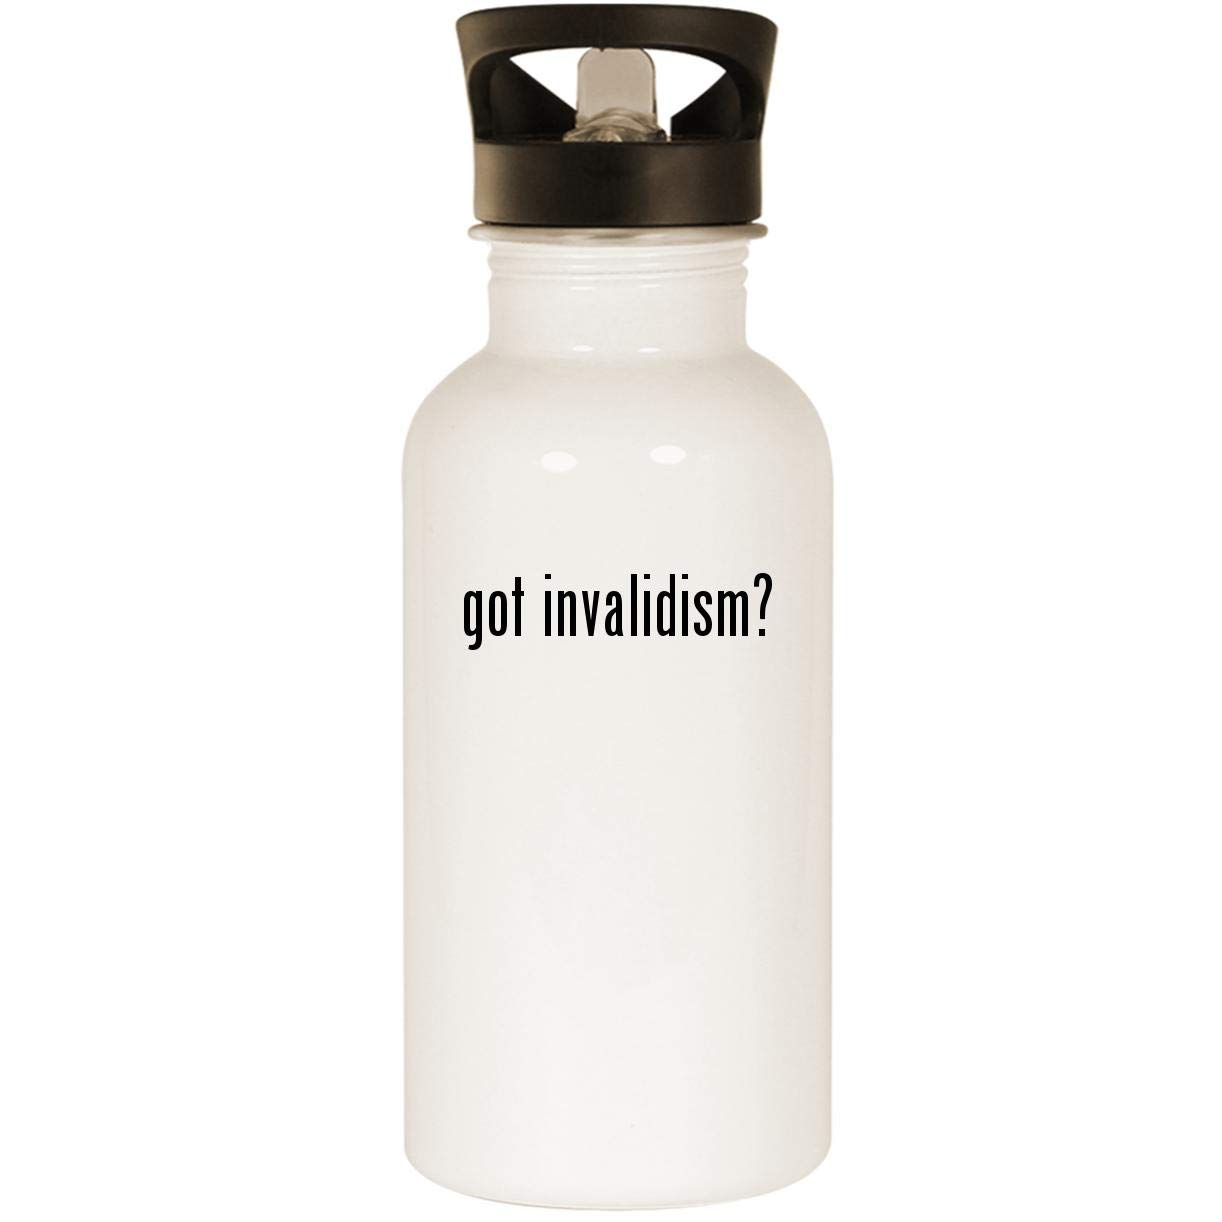 got invalidism? - Stainless Steel 20oz Road Ready Water Bottle, White